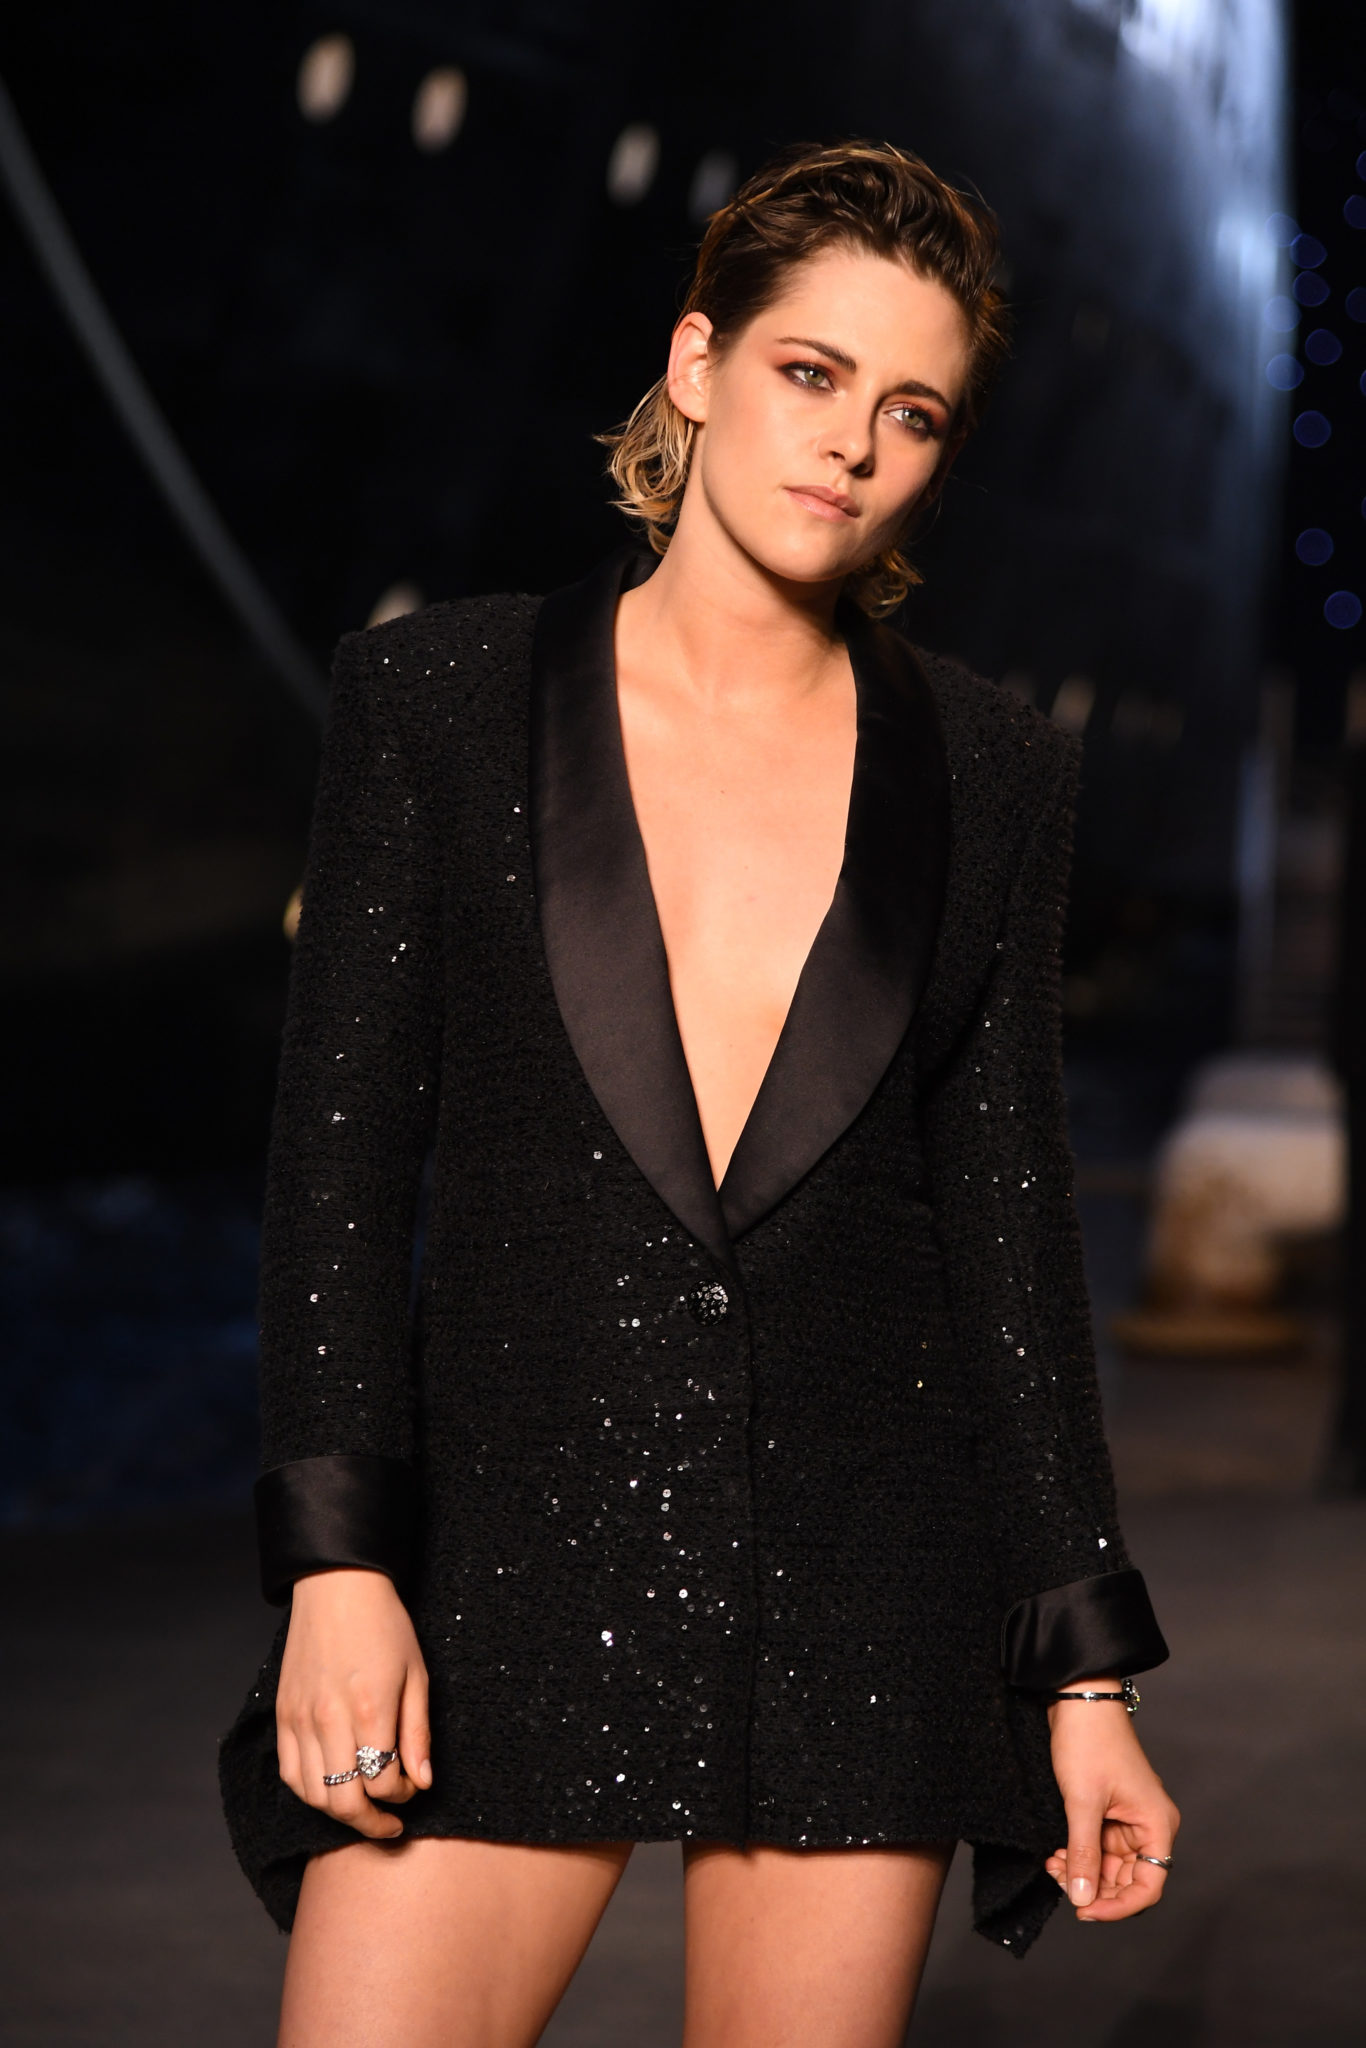 attends the Chanel Cruise 2018 2019 Collection at Le Grand Palais on May 3 07ea887ce2da